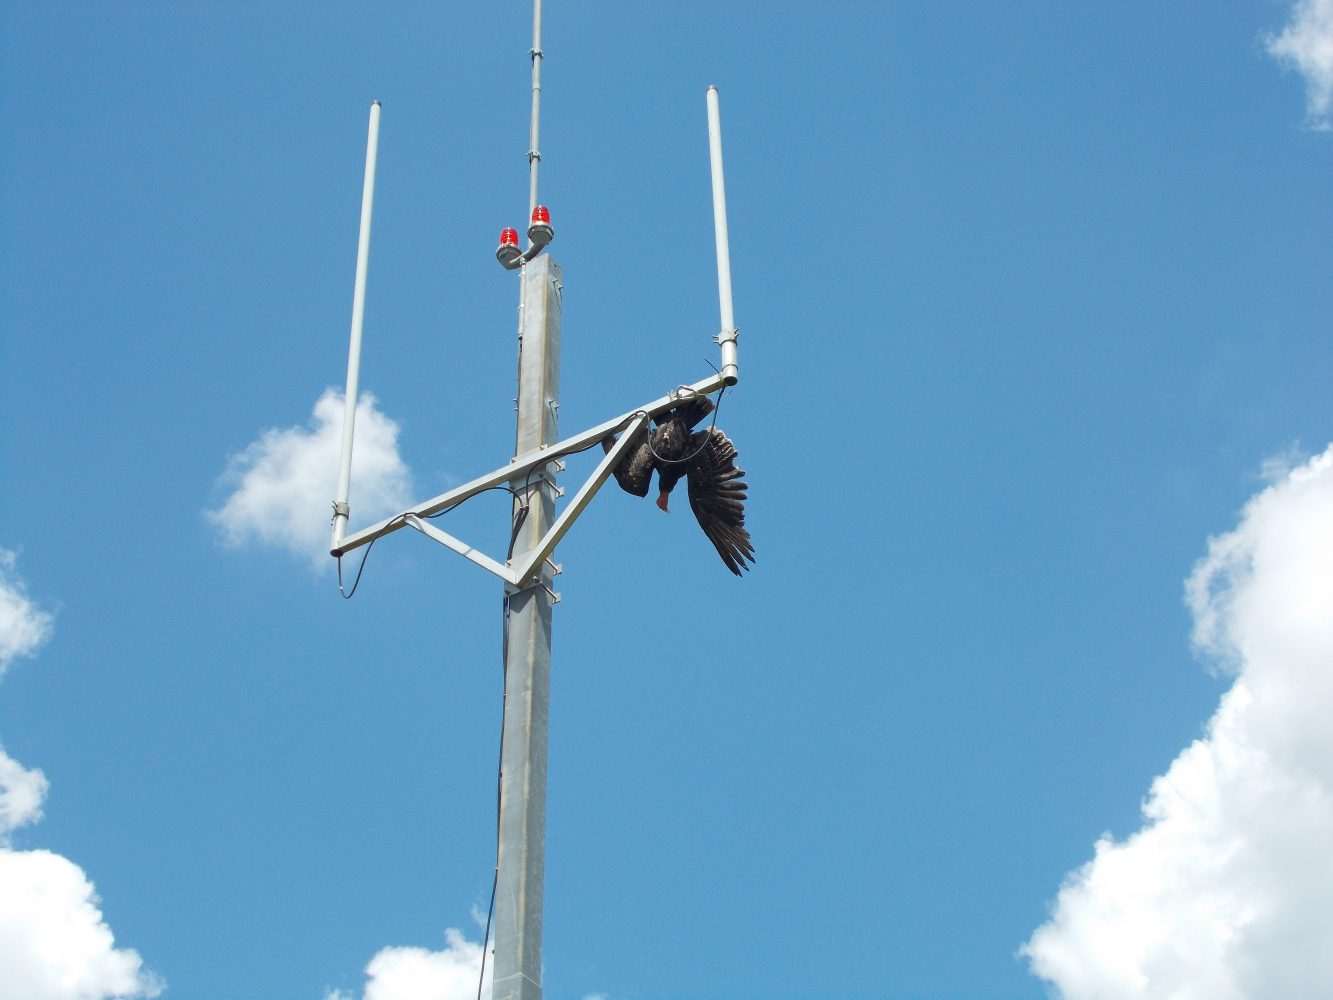 The effigy hung from an antenna at the Gainesville Regional Airport has been successful at keeping the birds off of it. The effigies cost $300 and last a year or more.